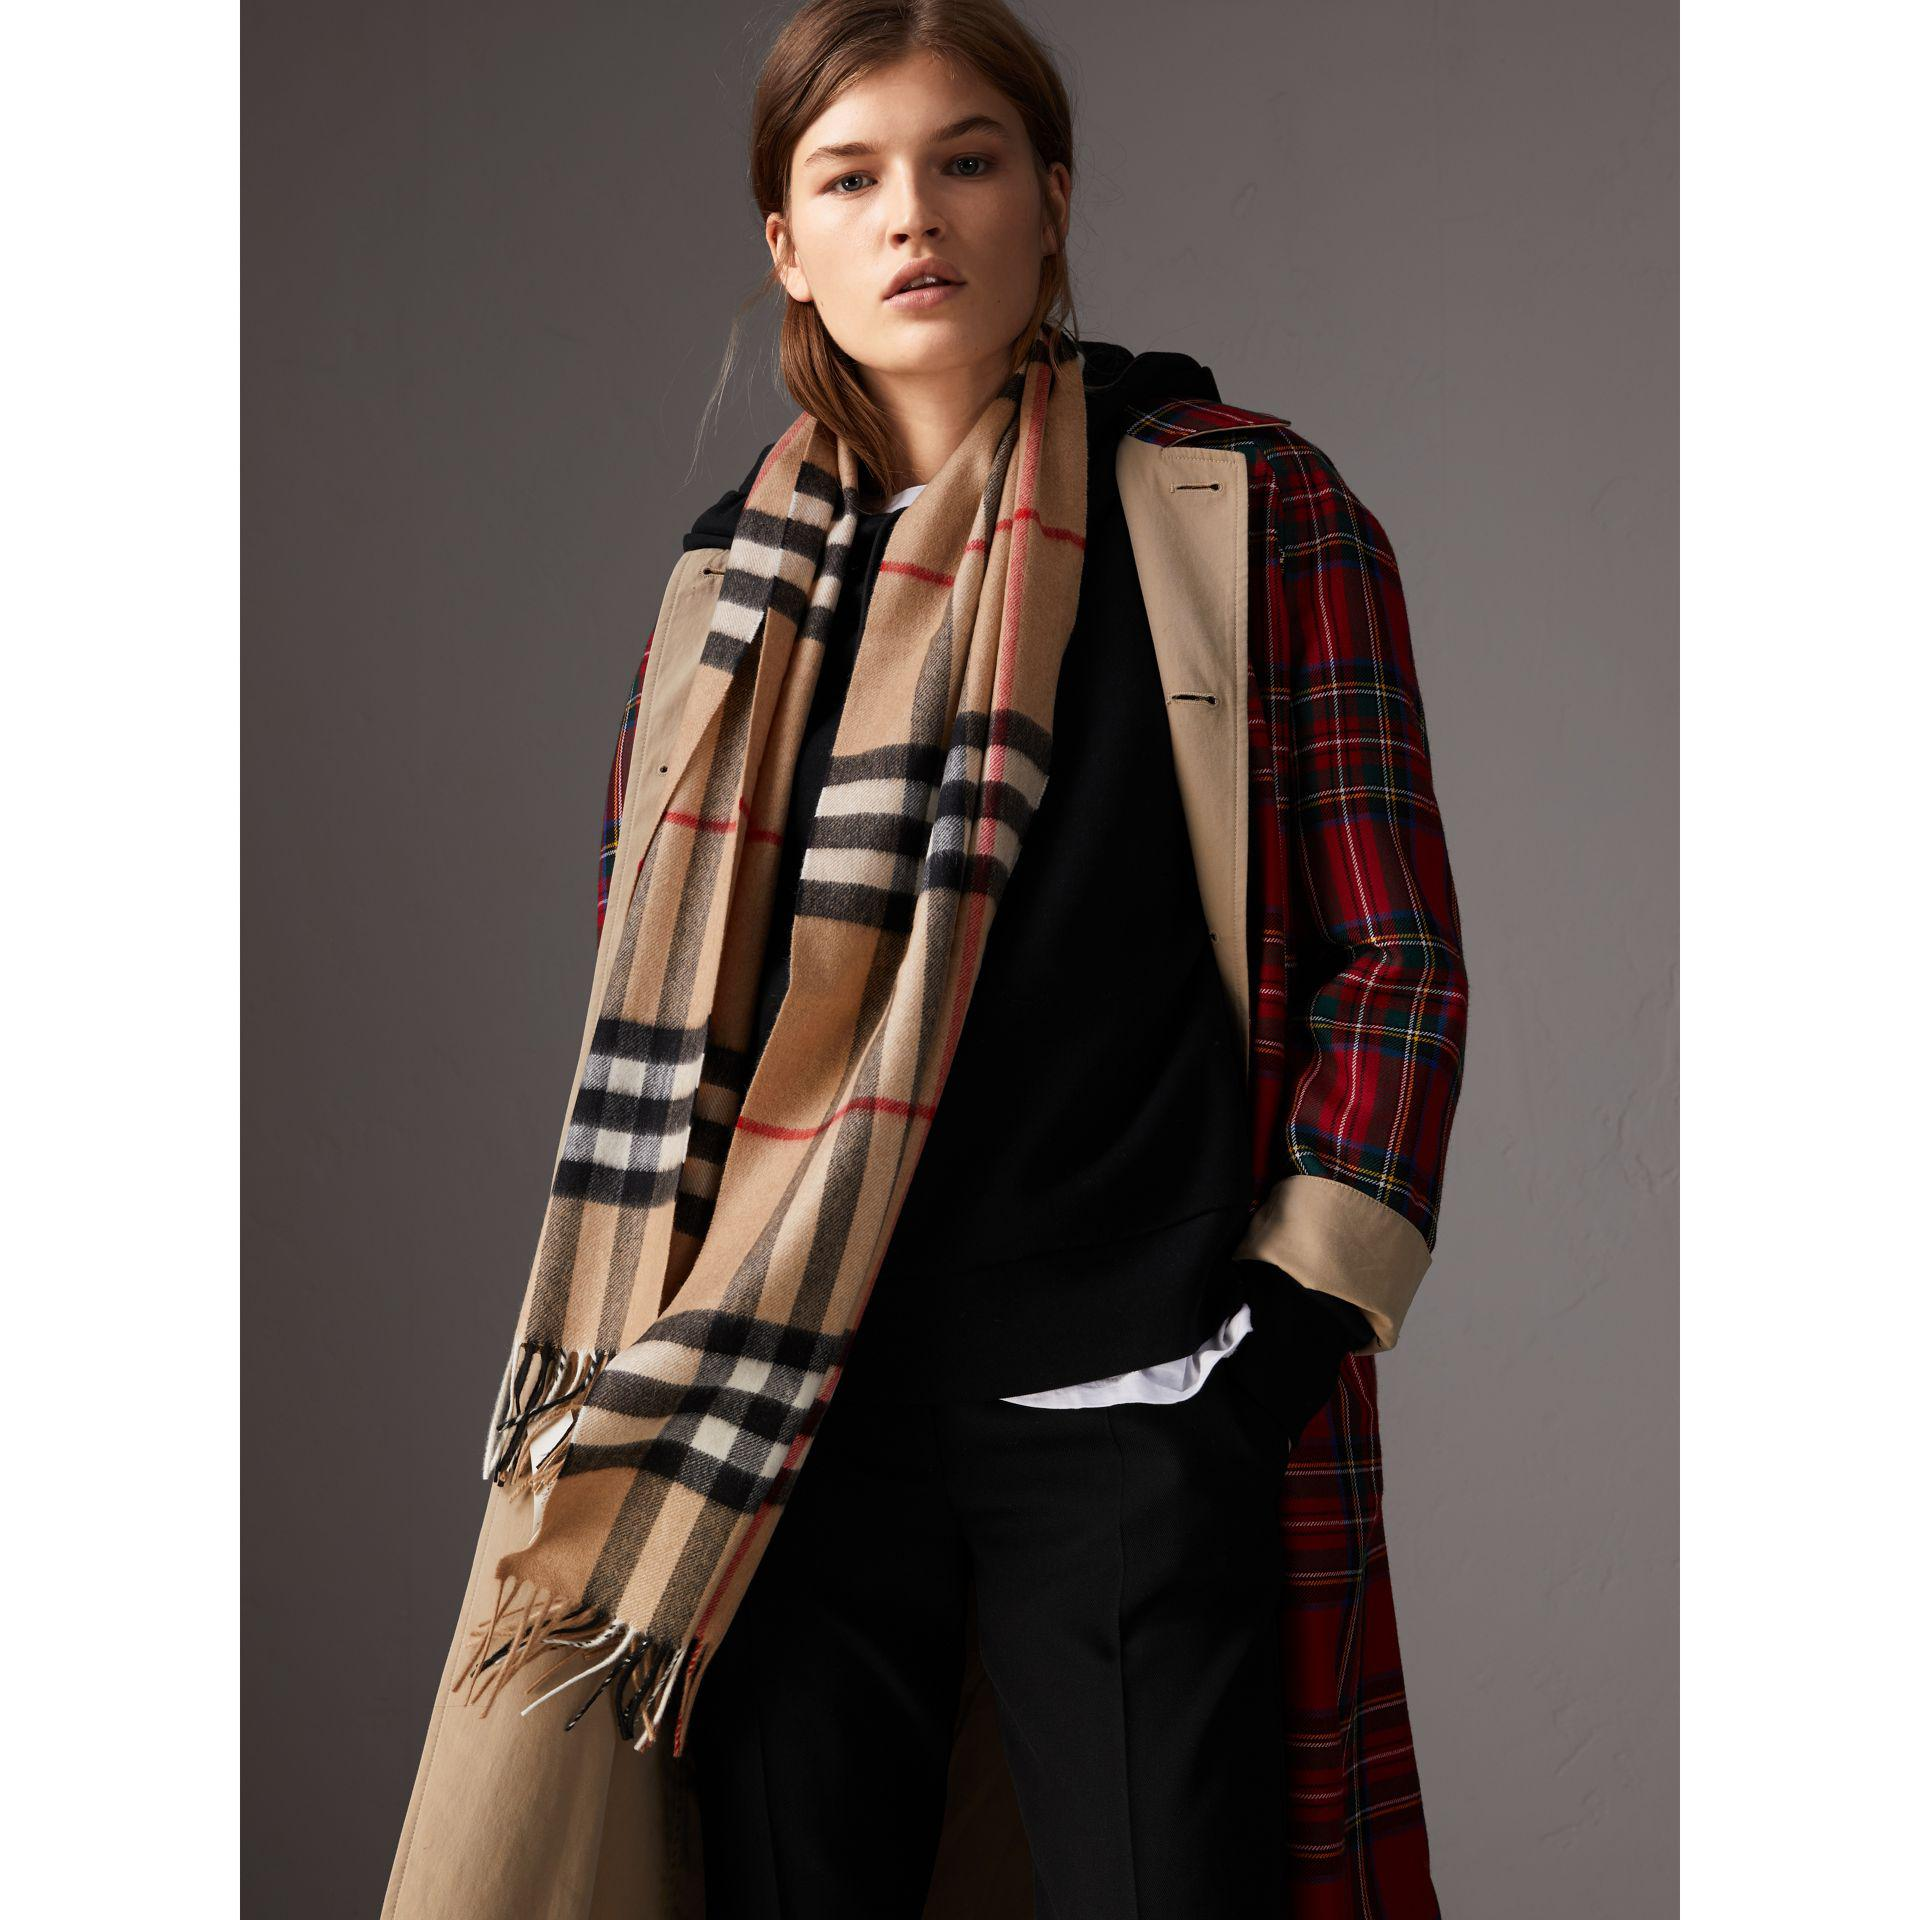 af8178f92019f ... real burberry natural heritage check classic cashmere scarf lyst. view  fullscreen 07510 e7cd8